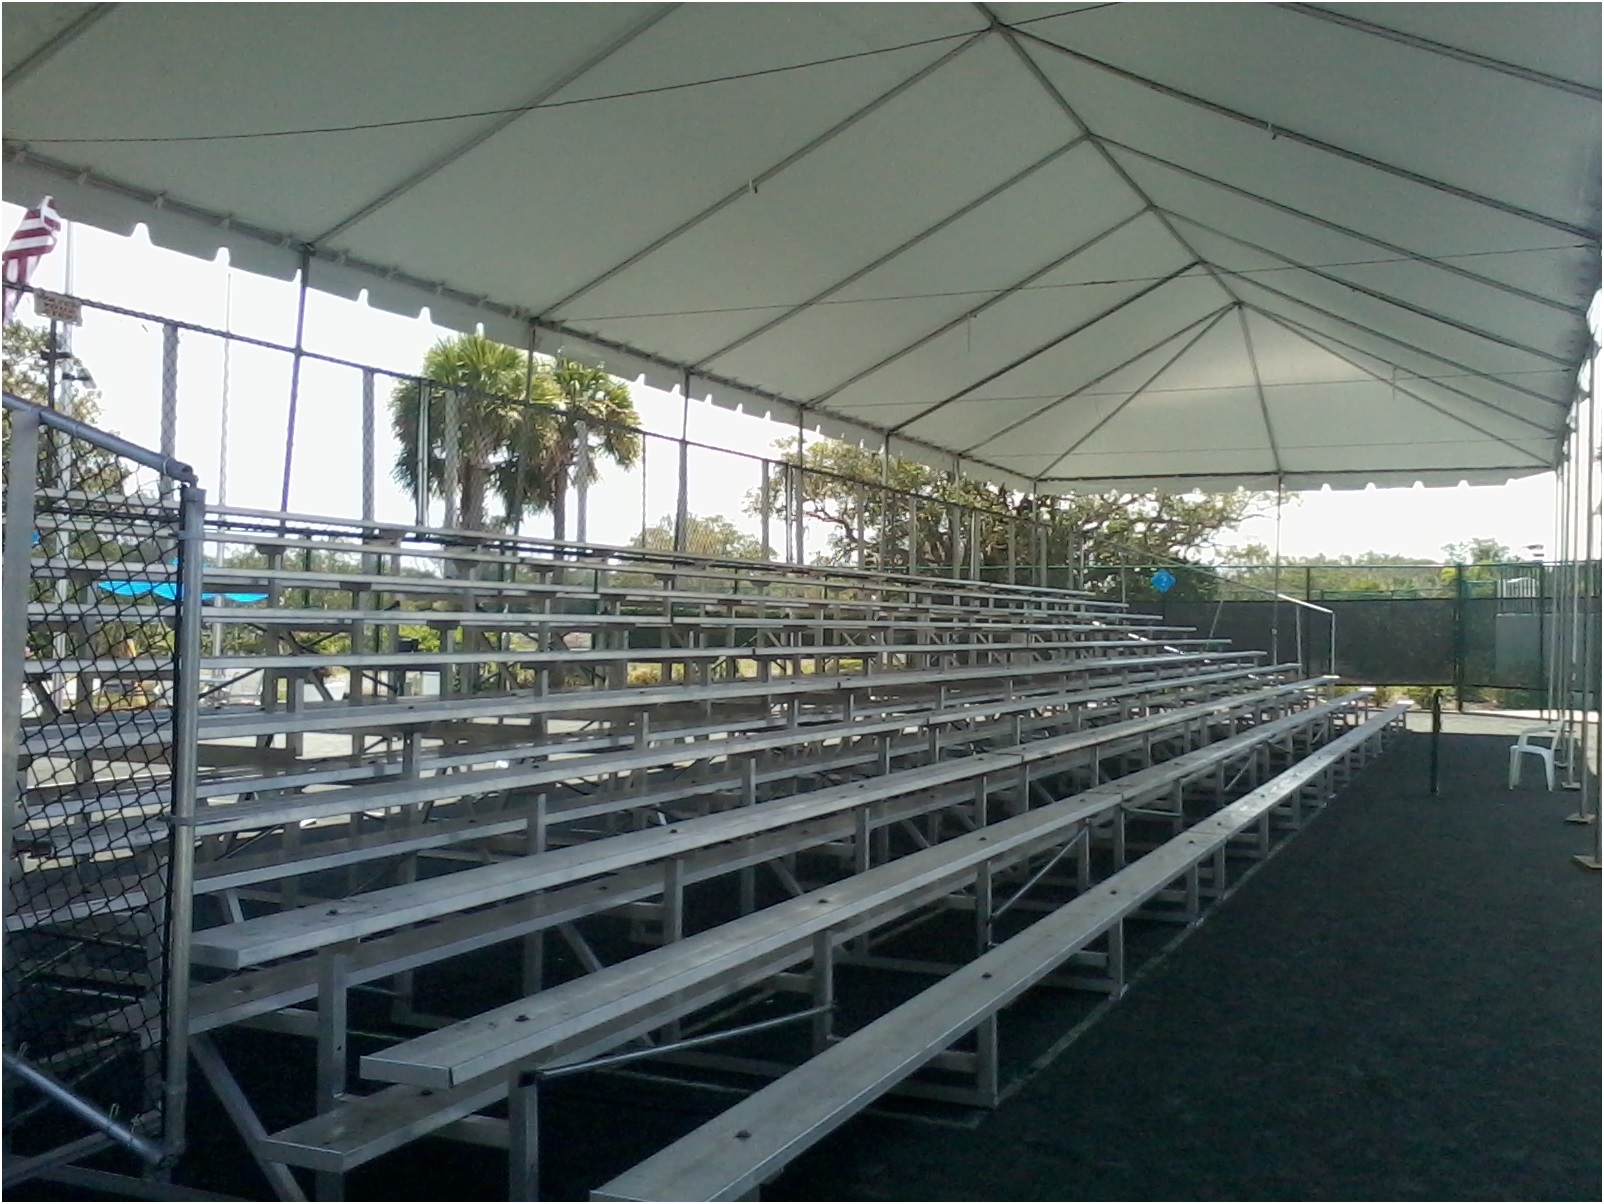 Spring Sports Bleachers to Rent | Temporary Portable Aluminum Seating